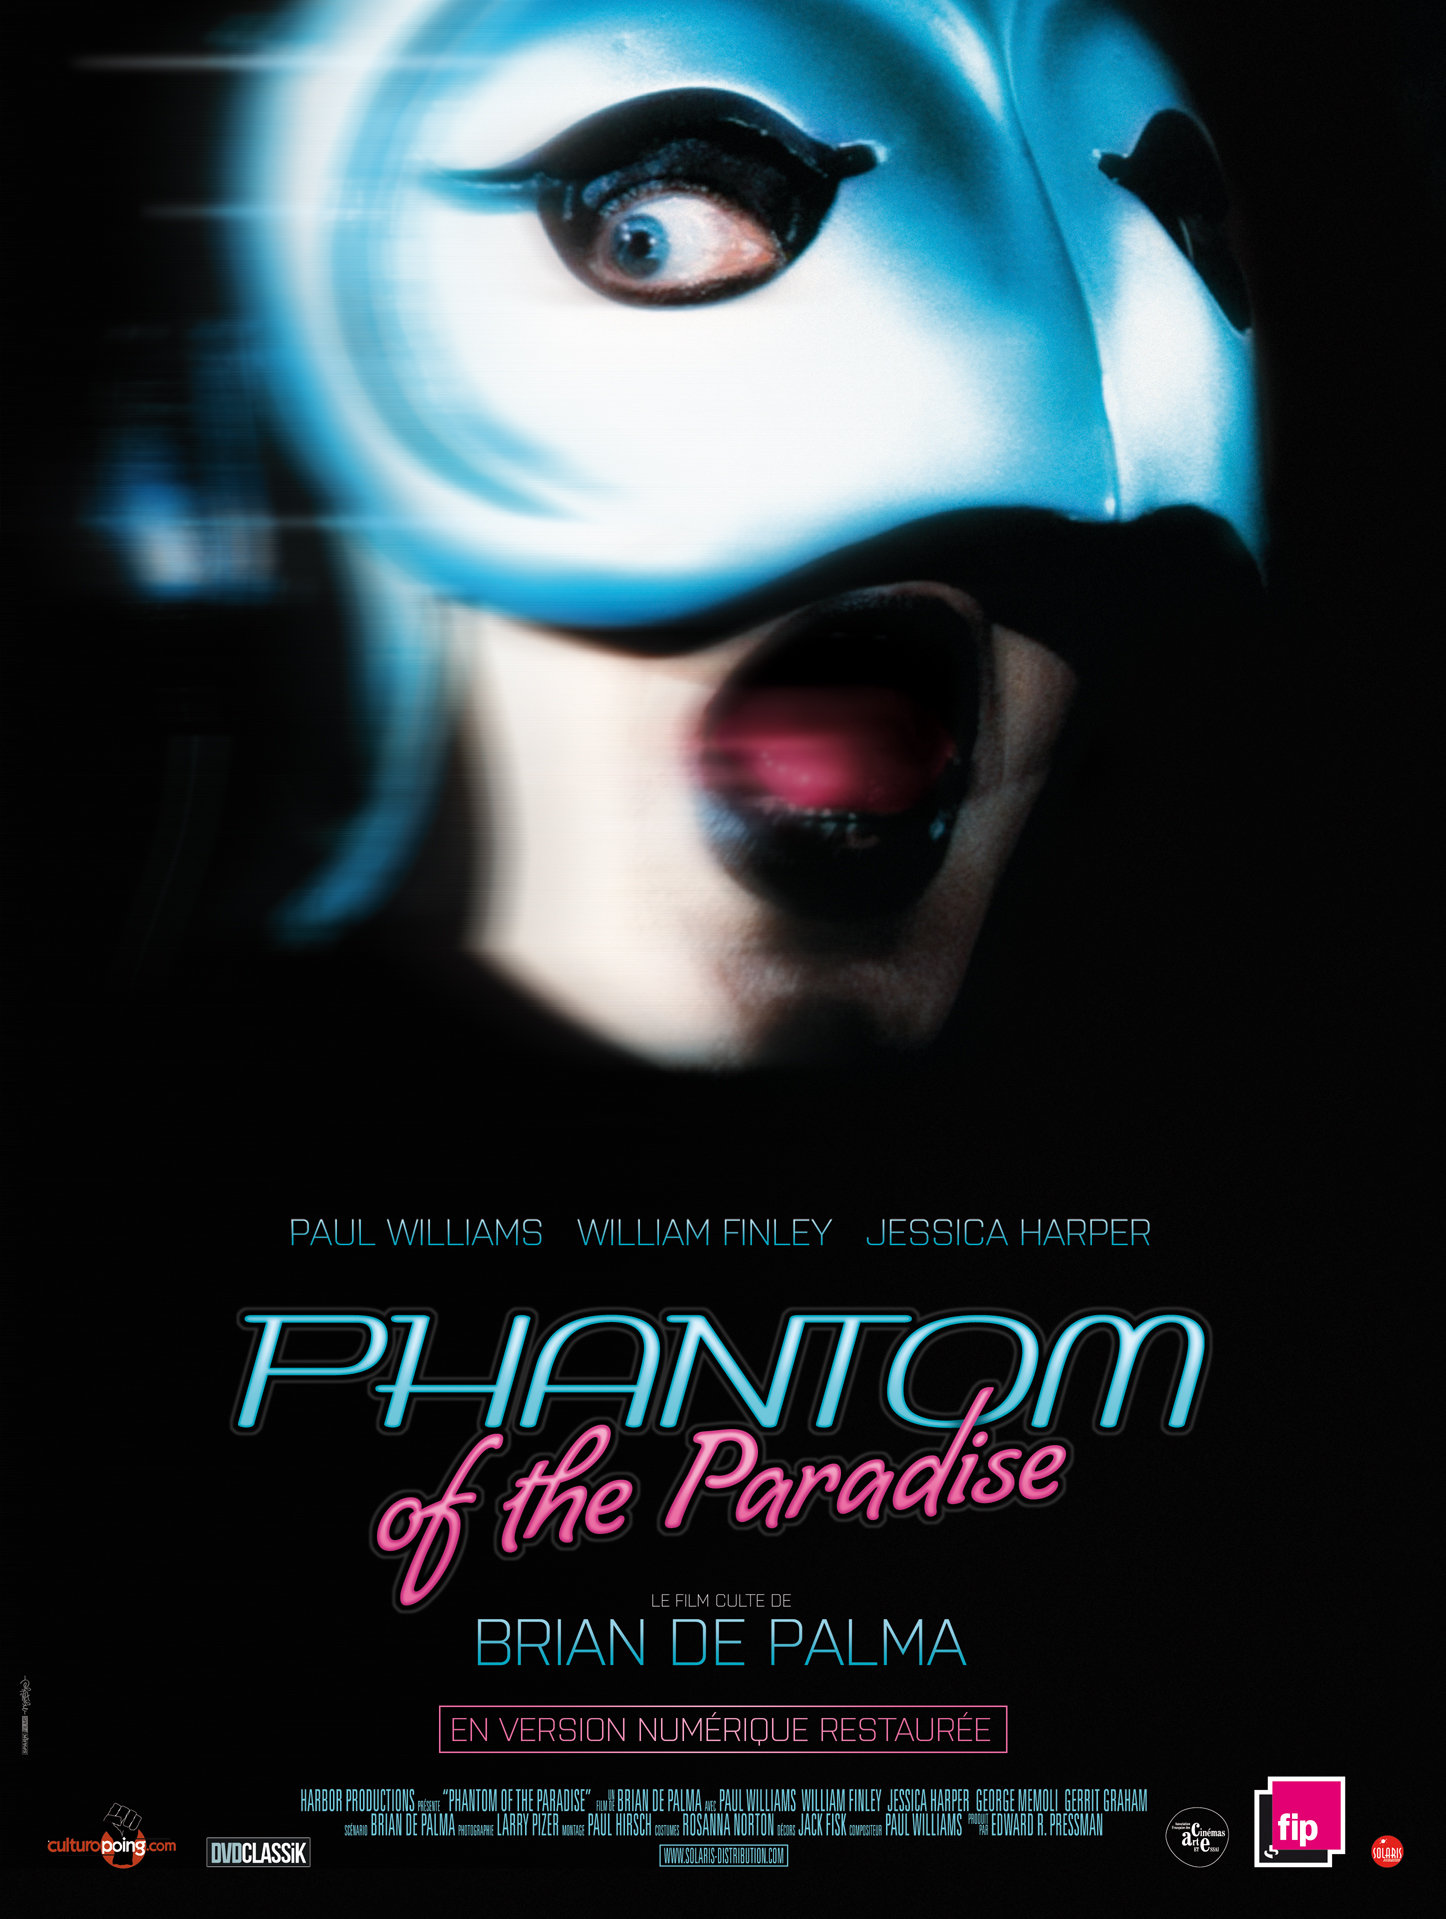 PHANTOM OF THE PARADISE - Affiche